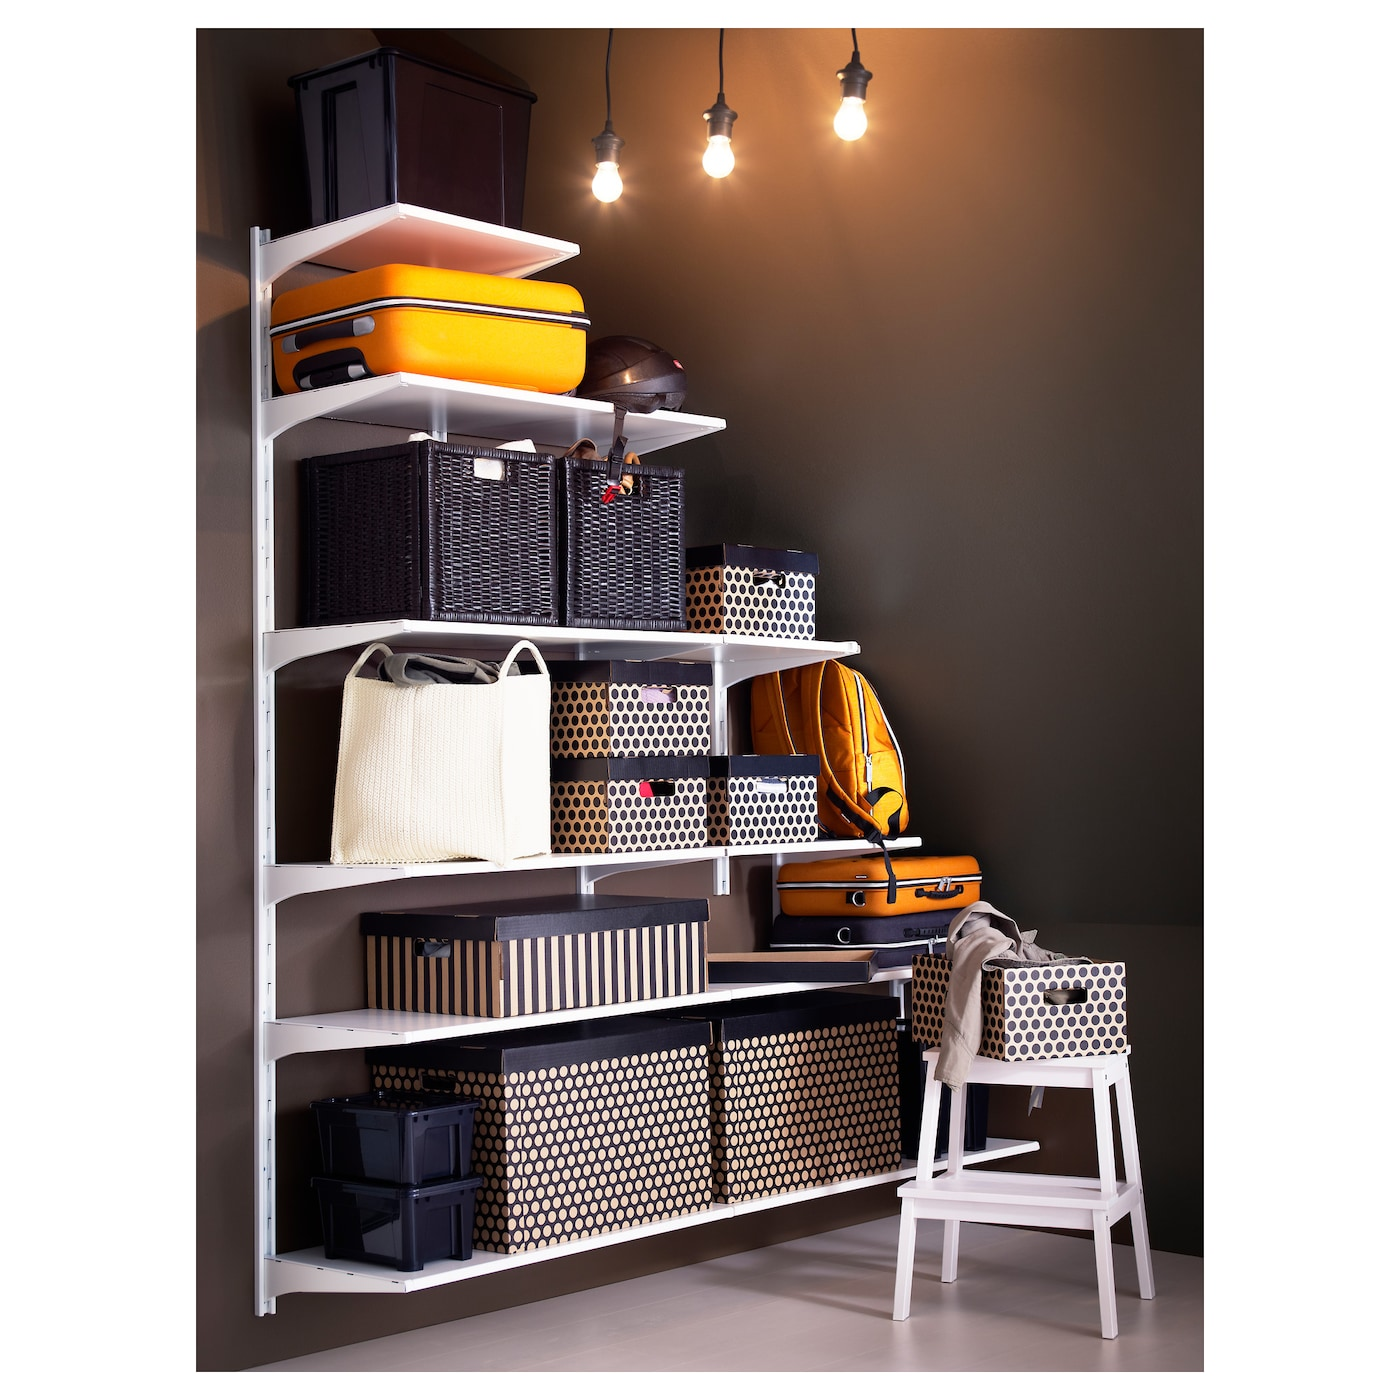 IKEA ALGOT wall upright/shelves Easy to fit under stairs or in a room with a slanted ceiling.